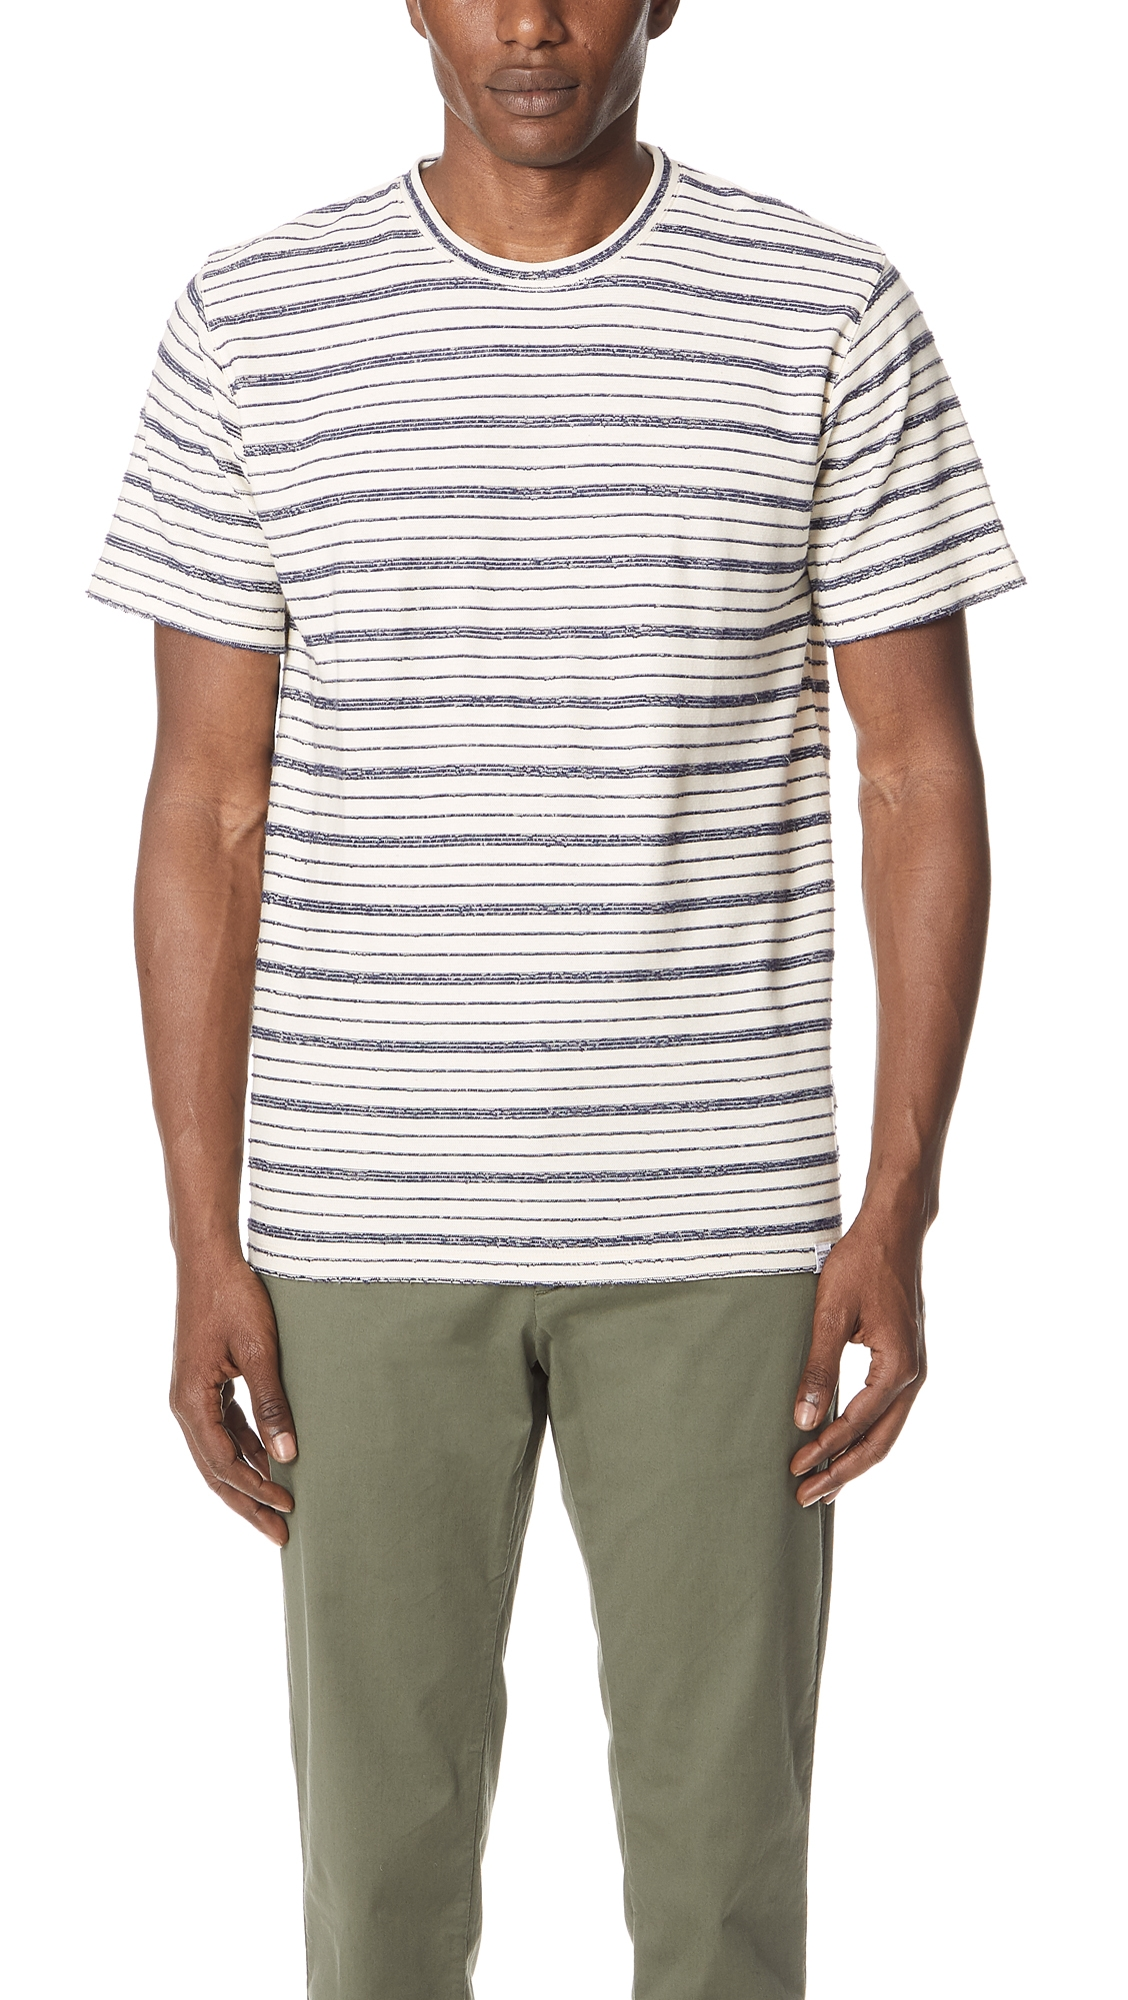 NORSE PROJECTS Niels Textured Striped Cotton-Blend Jersey T-Shirt - Cream in Blue